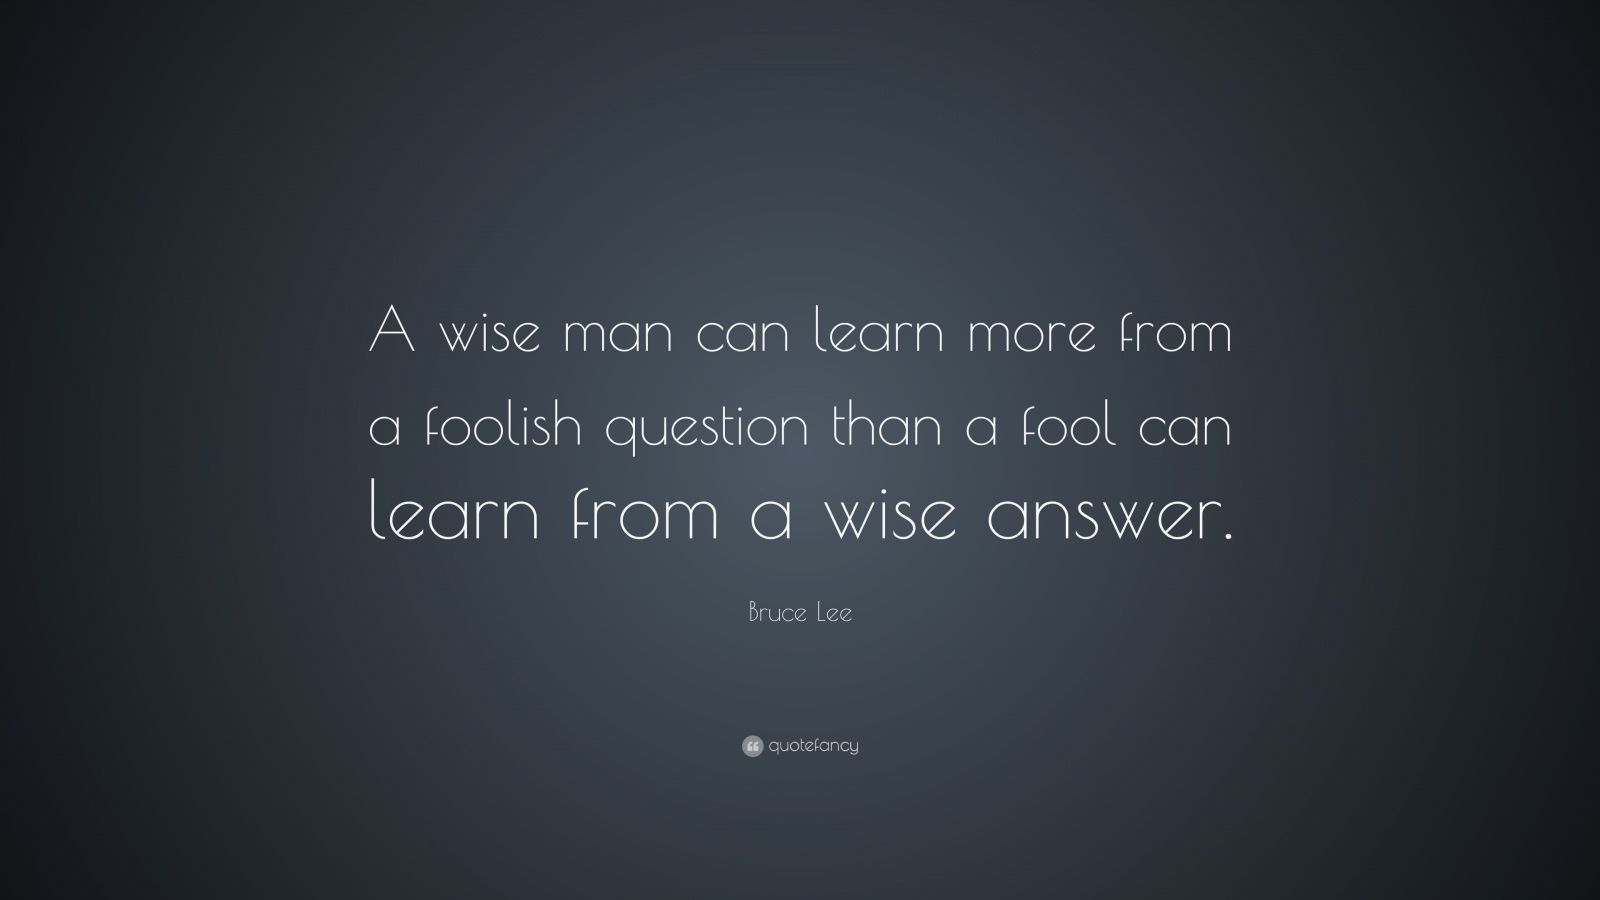 """Wisdom Quotes: """"A wise man can learn more from a foolish question than a fool can learn from a wise answer."""" — Bruce Lee"""